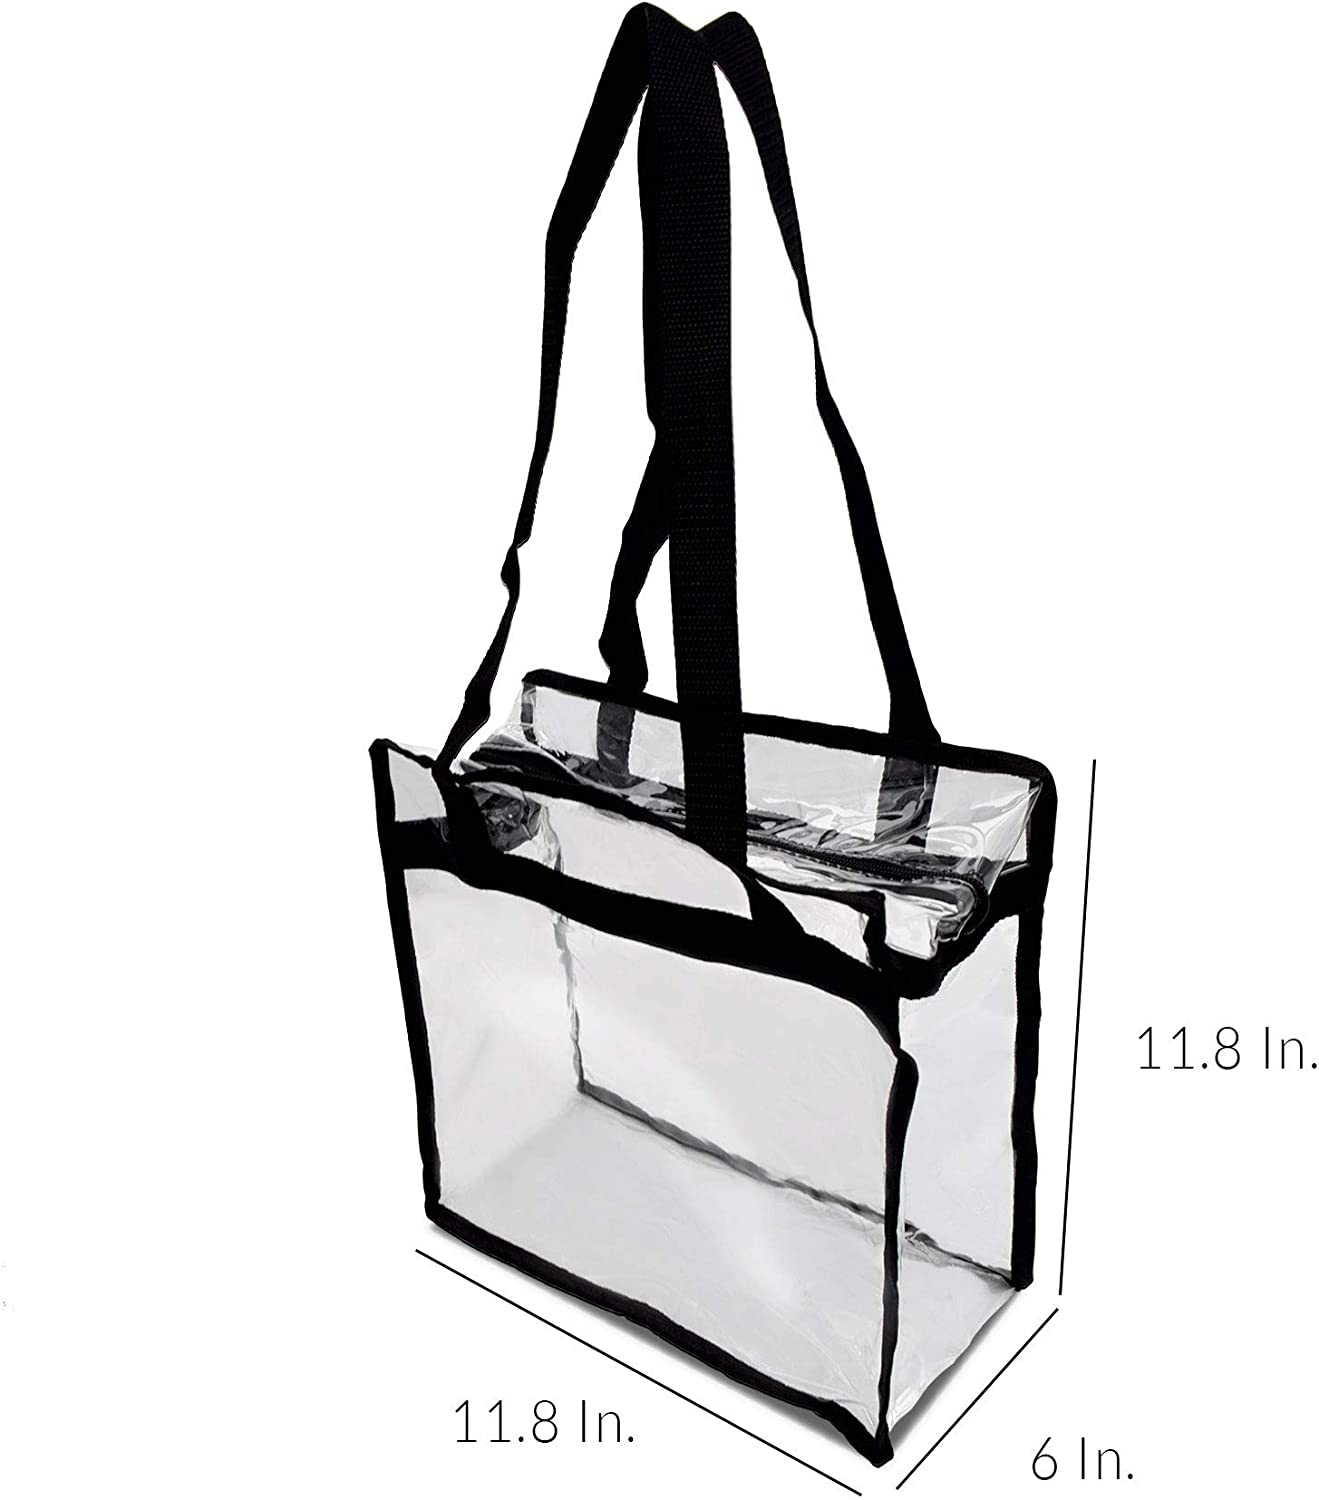 Shoulder and Hand Carry Double Zipper 11.8x6x11.8 Clear Organization PRIME LINE RETAIL Clear Vinyl Zippered Tote Bag with Detachable Shoulder Strap Stadium Events Security Black Pack of 1